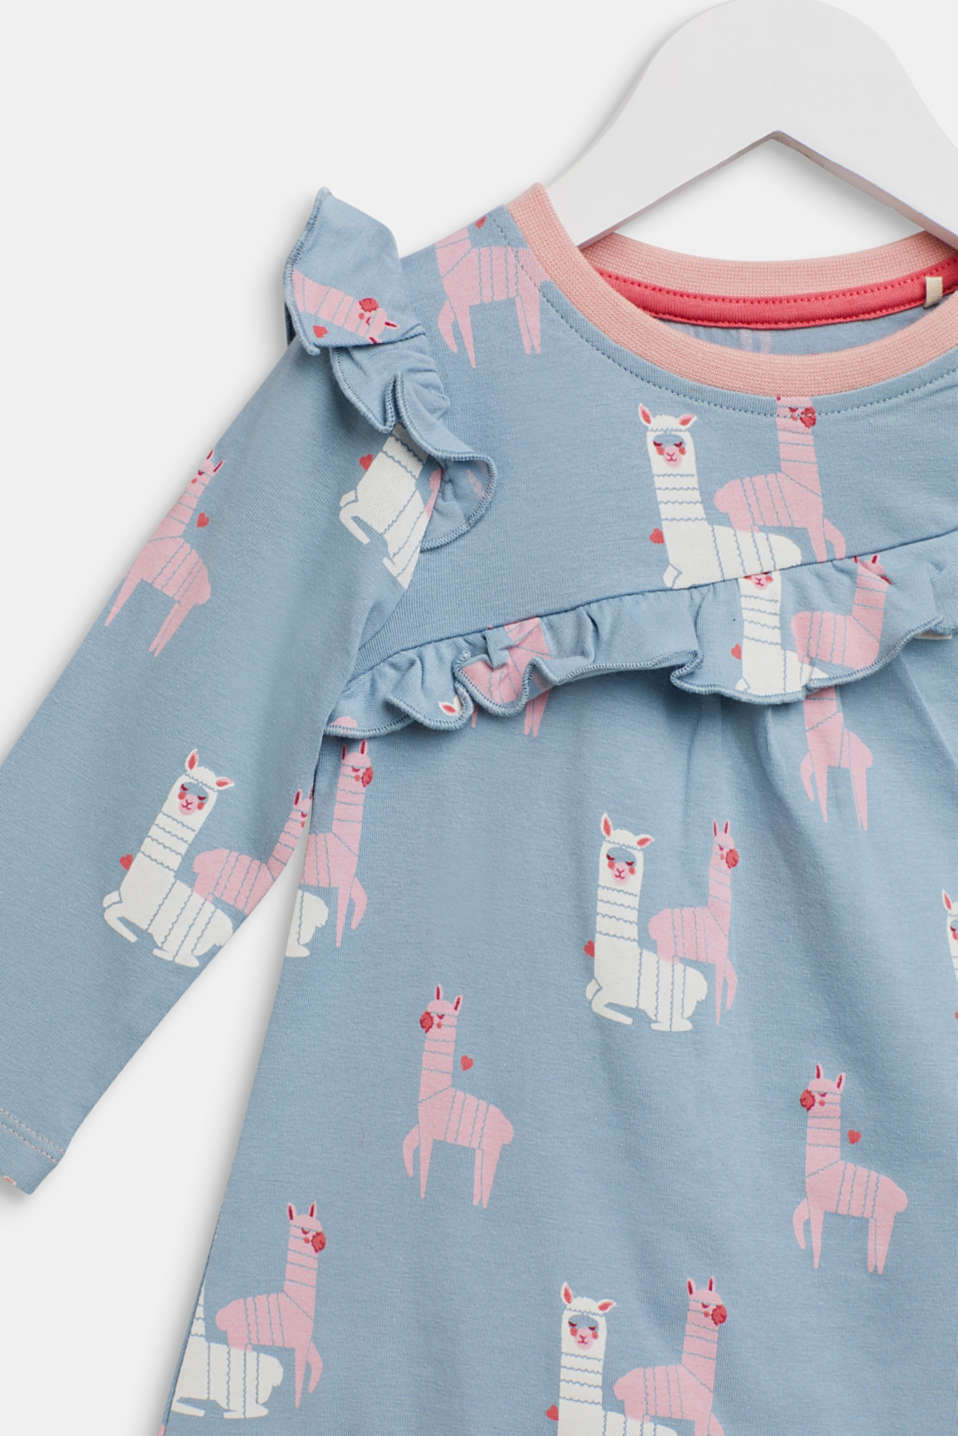 Long sleeve top with a llama print and frills, LCGREY BLUE, detail image number 2